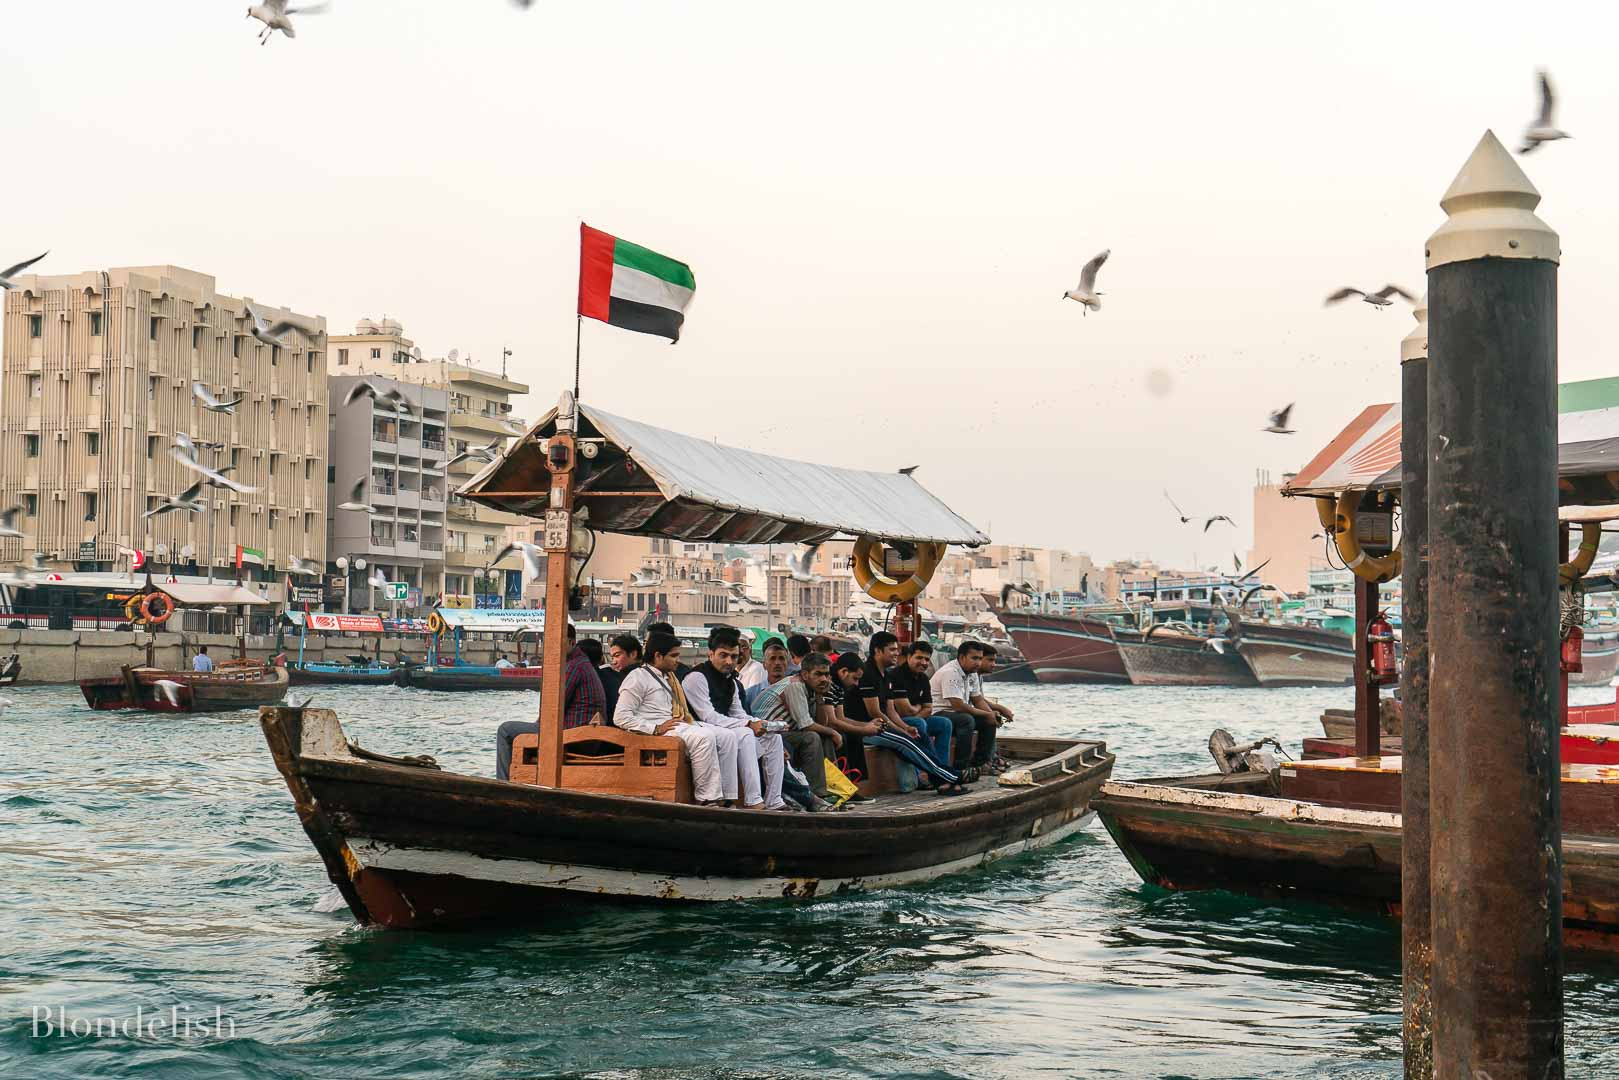 Dubai Abra Boats - Best Places to Visit in Dubai - Things to do in Dubai